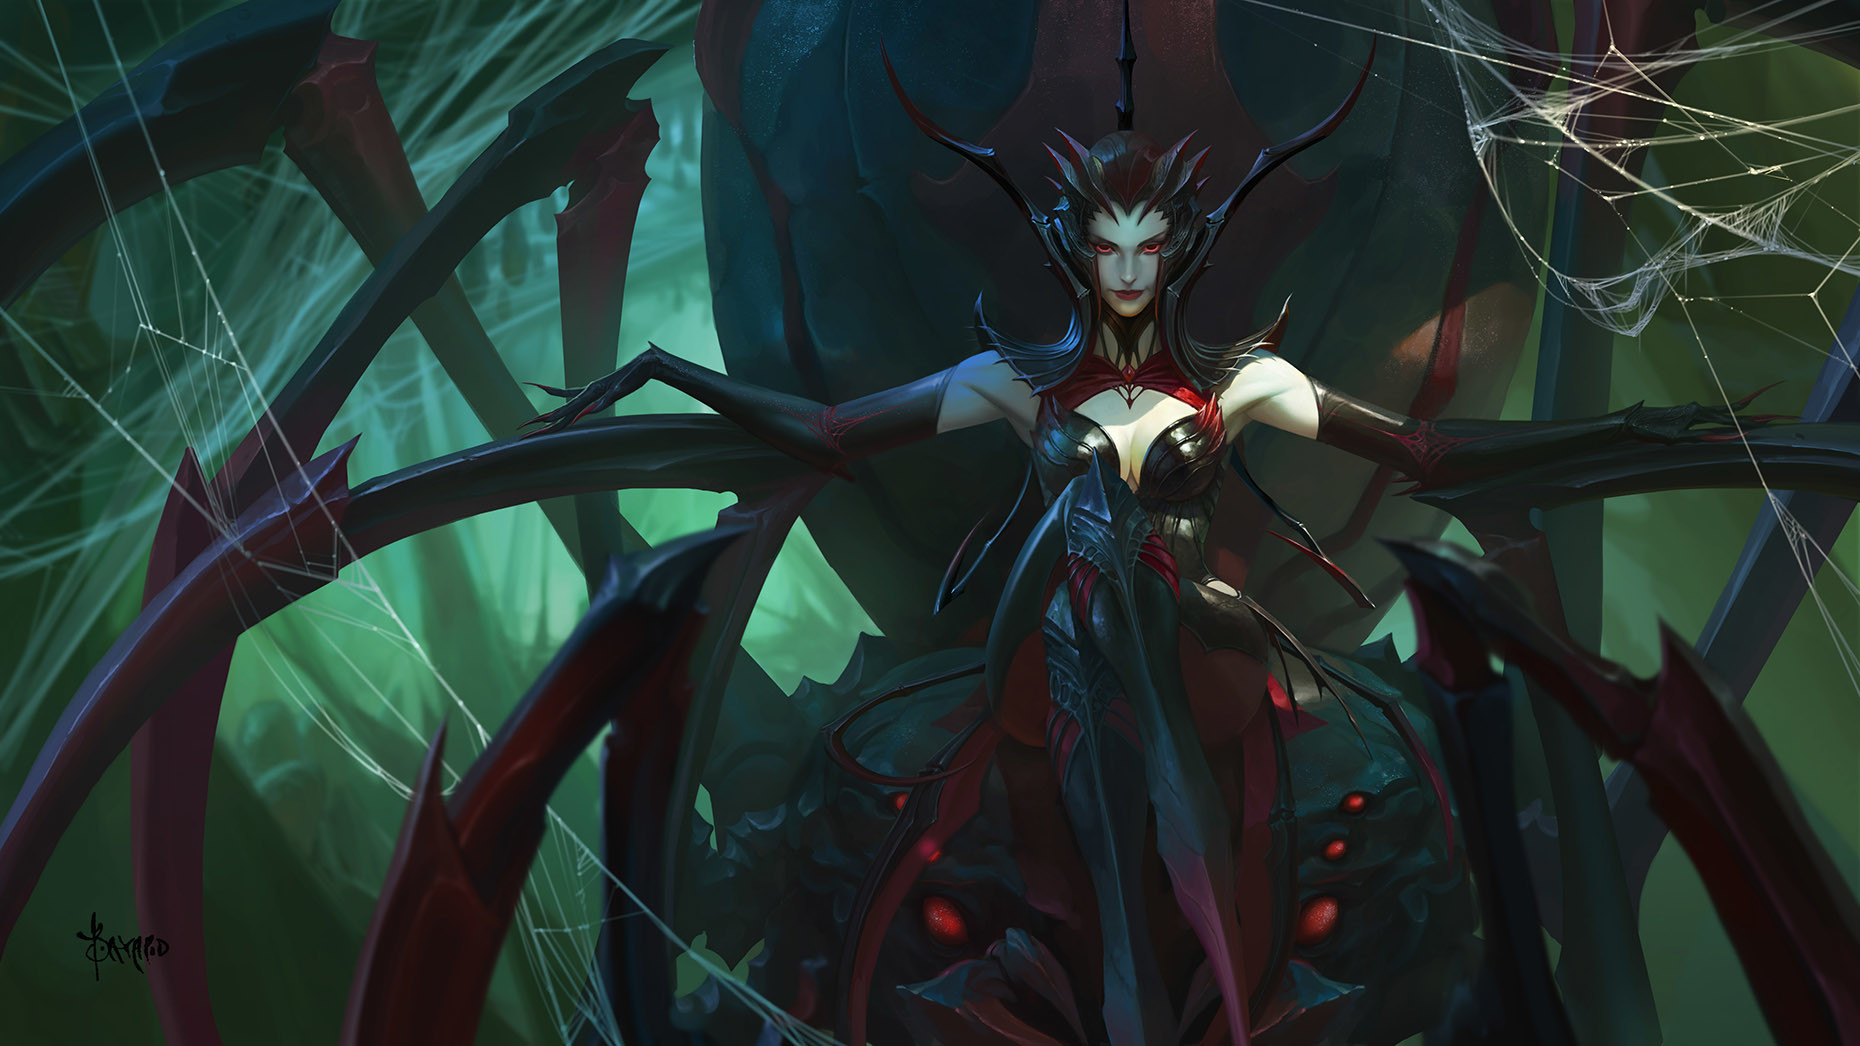 Bayard Wu Digital Painting Illustration Fantasy Spider Queen Elise League Of Legends